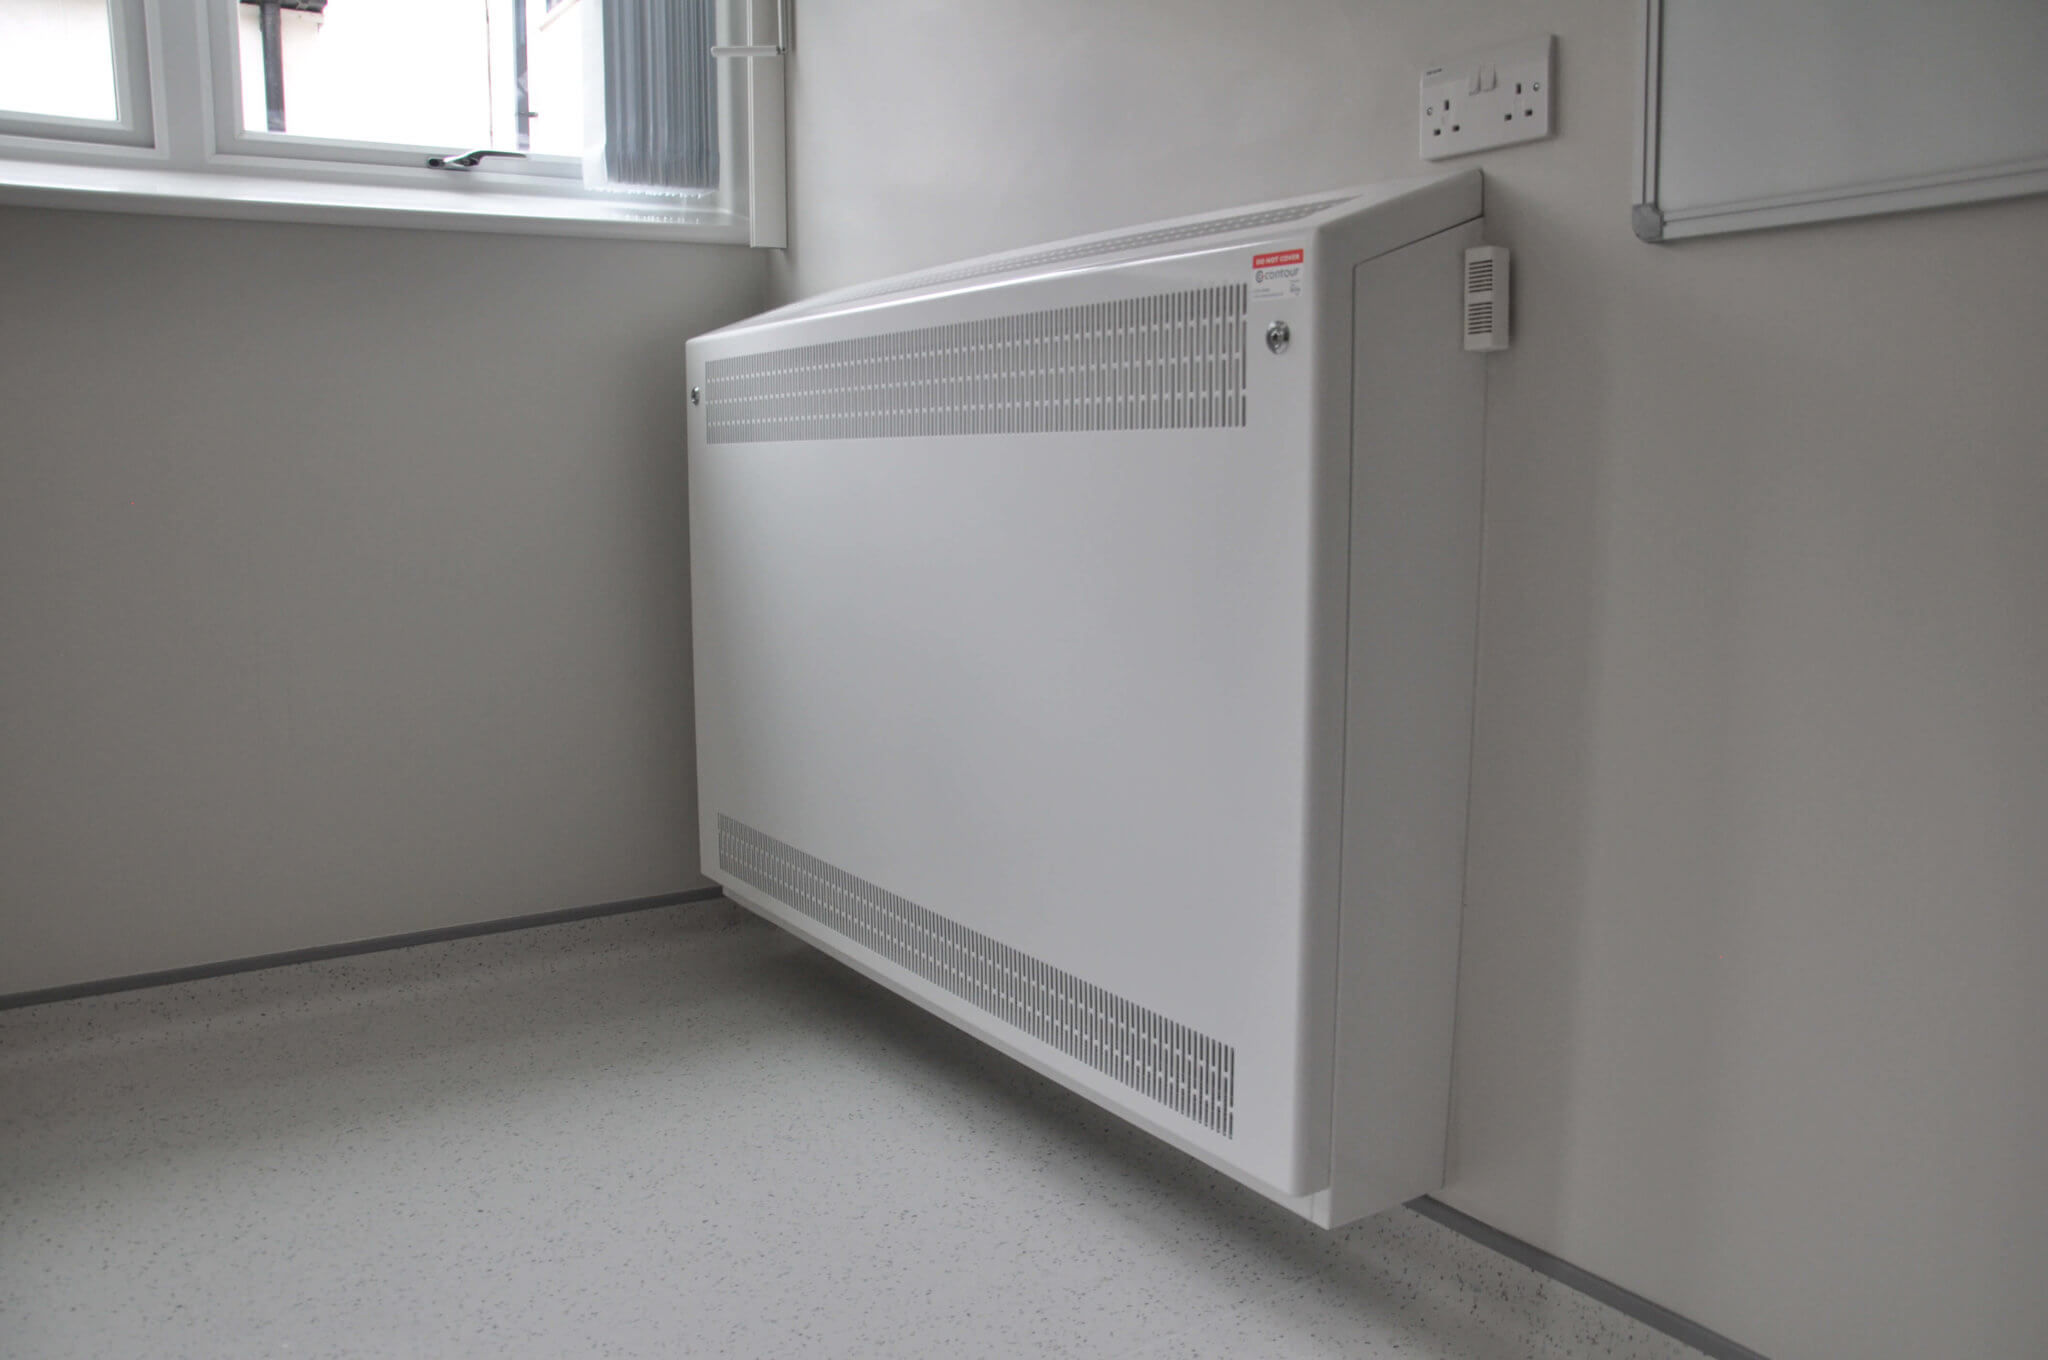 How Much Do Metal Radiator Covers Cost?